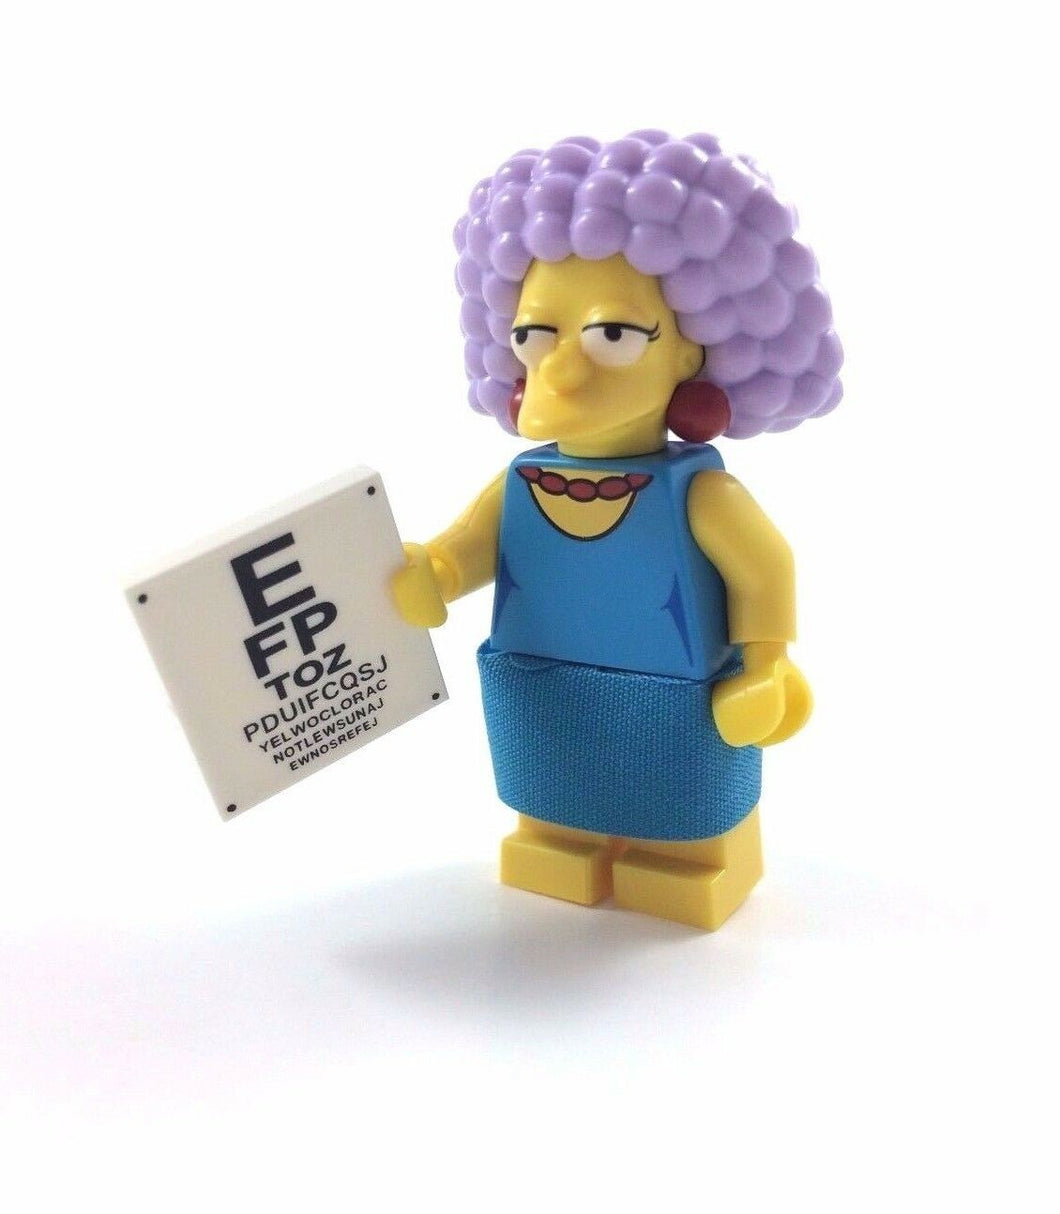 NEW LEGO 71009 MINIFIGURES SERIES Simpons Series 2 - Selma